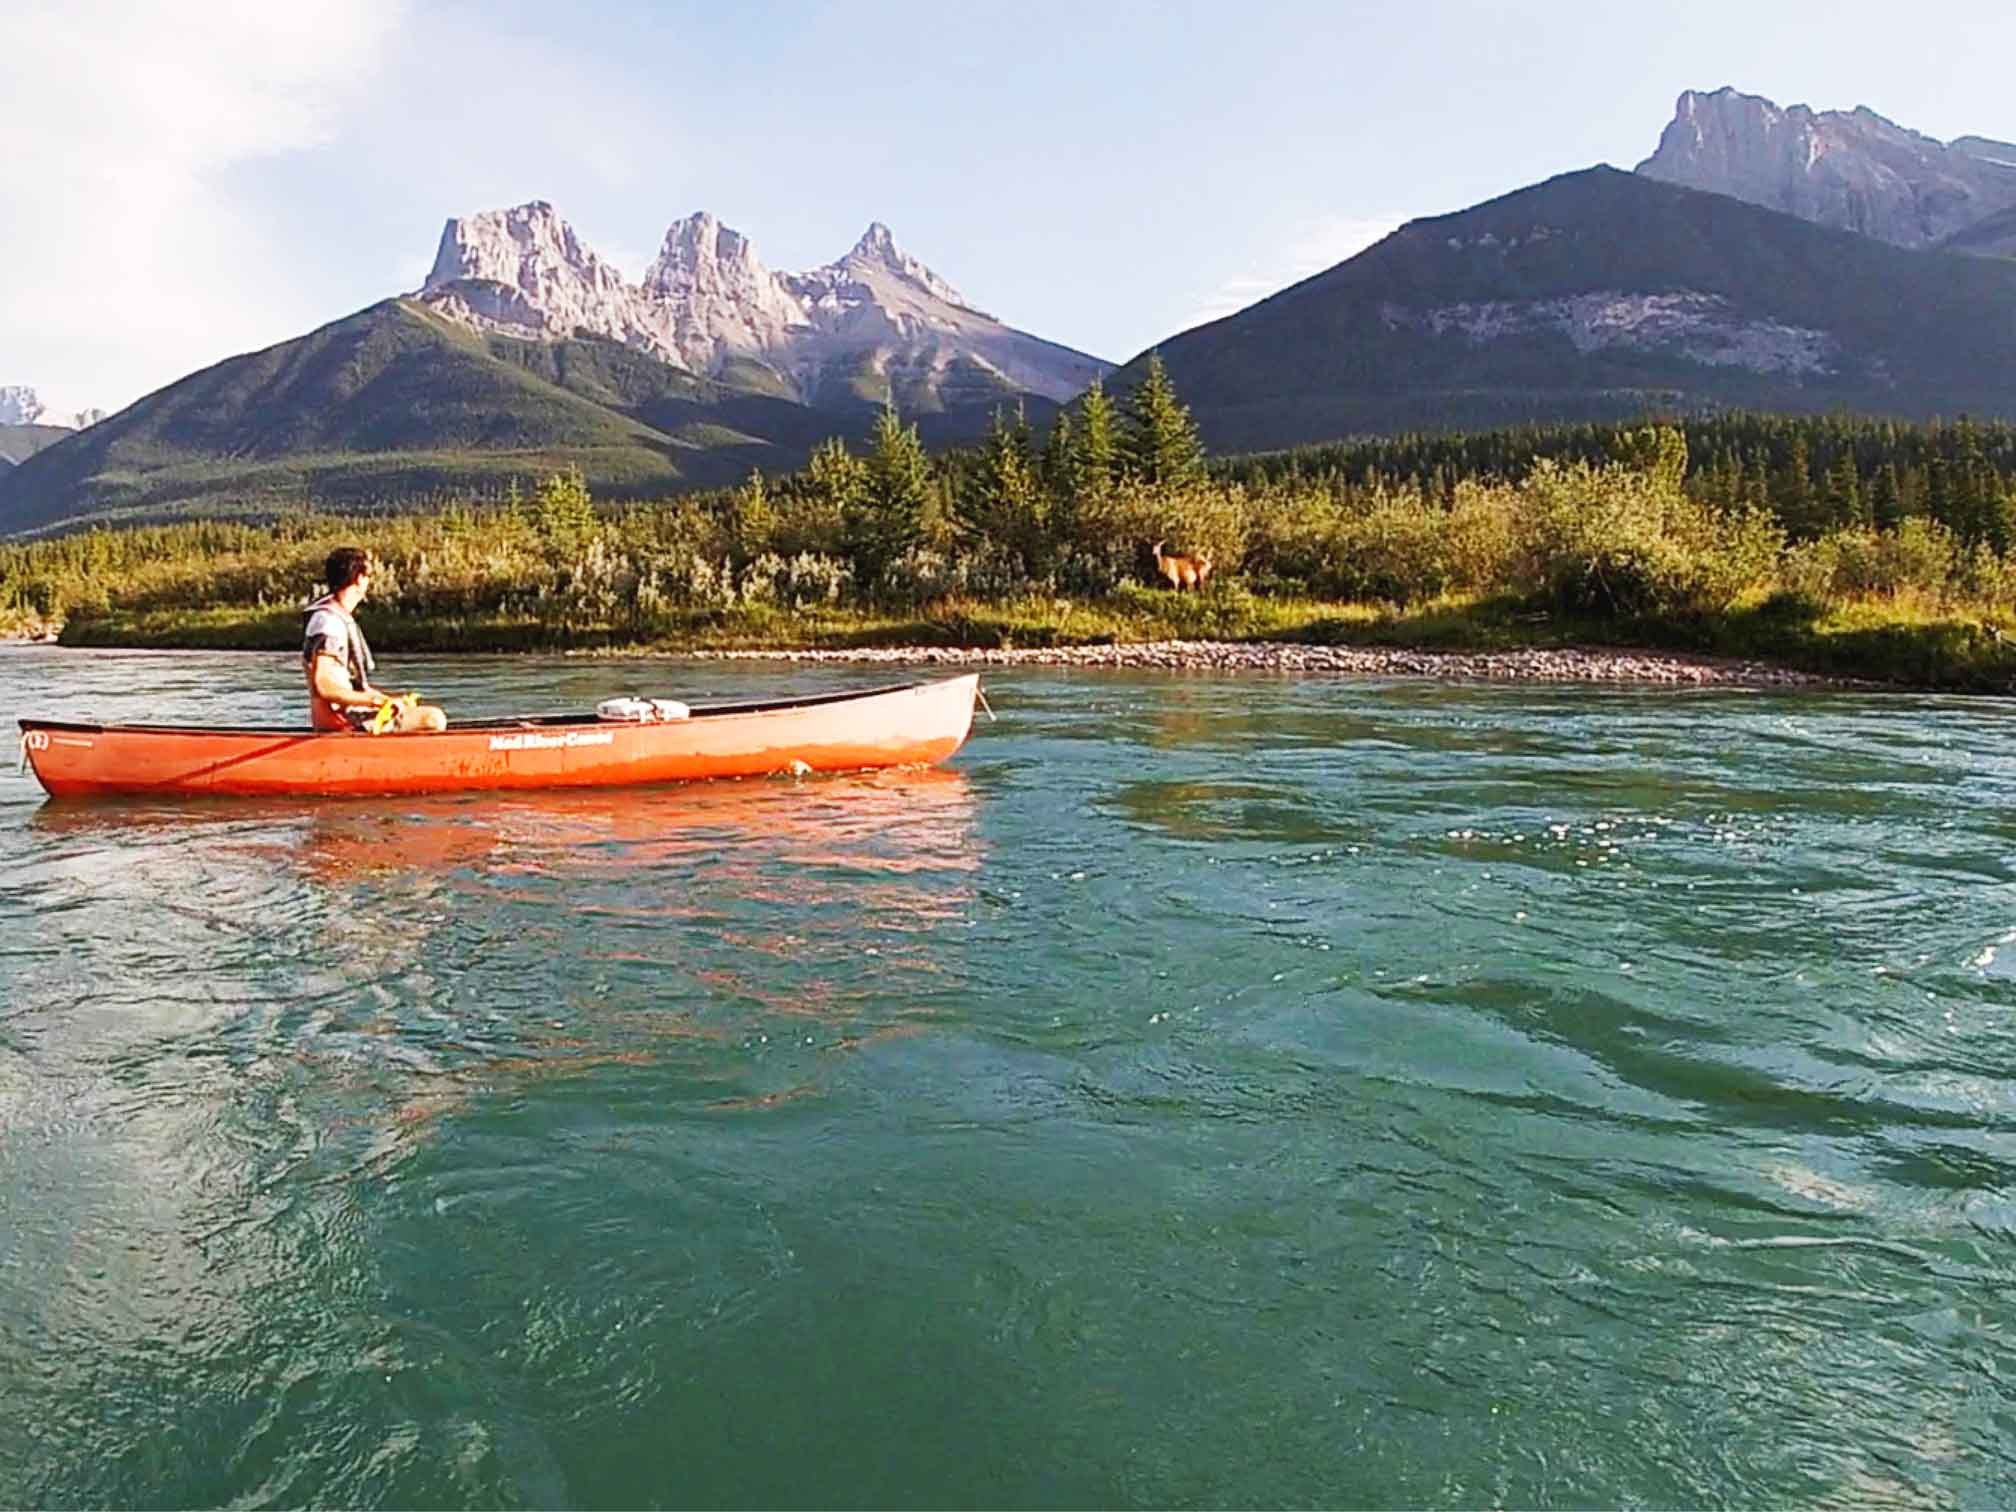 An elk on the side of the Bow River while canoeing in Canmore on an evening paddle between Canmore and Exshaw